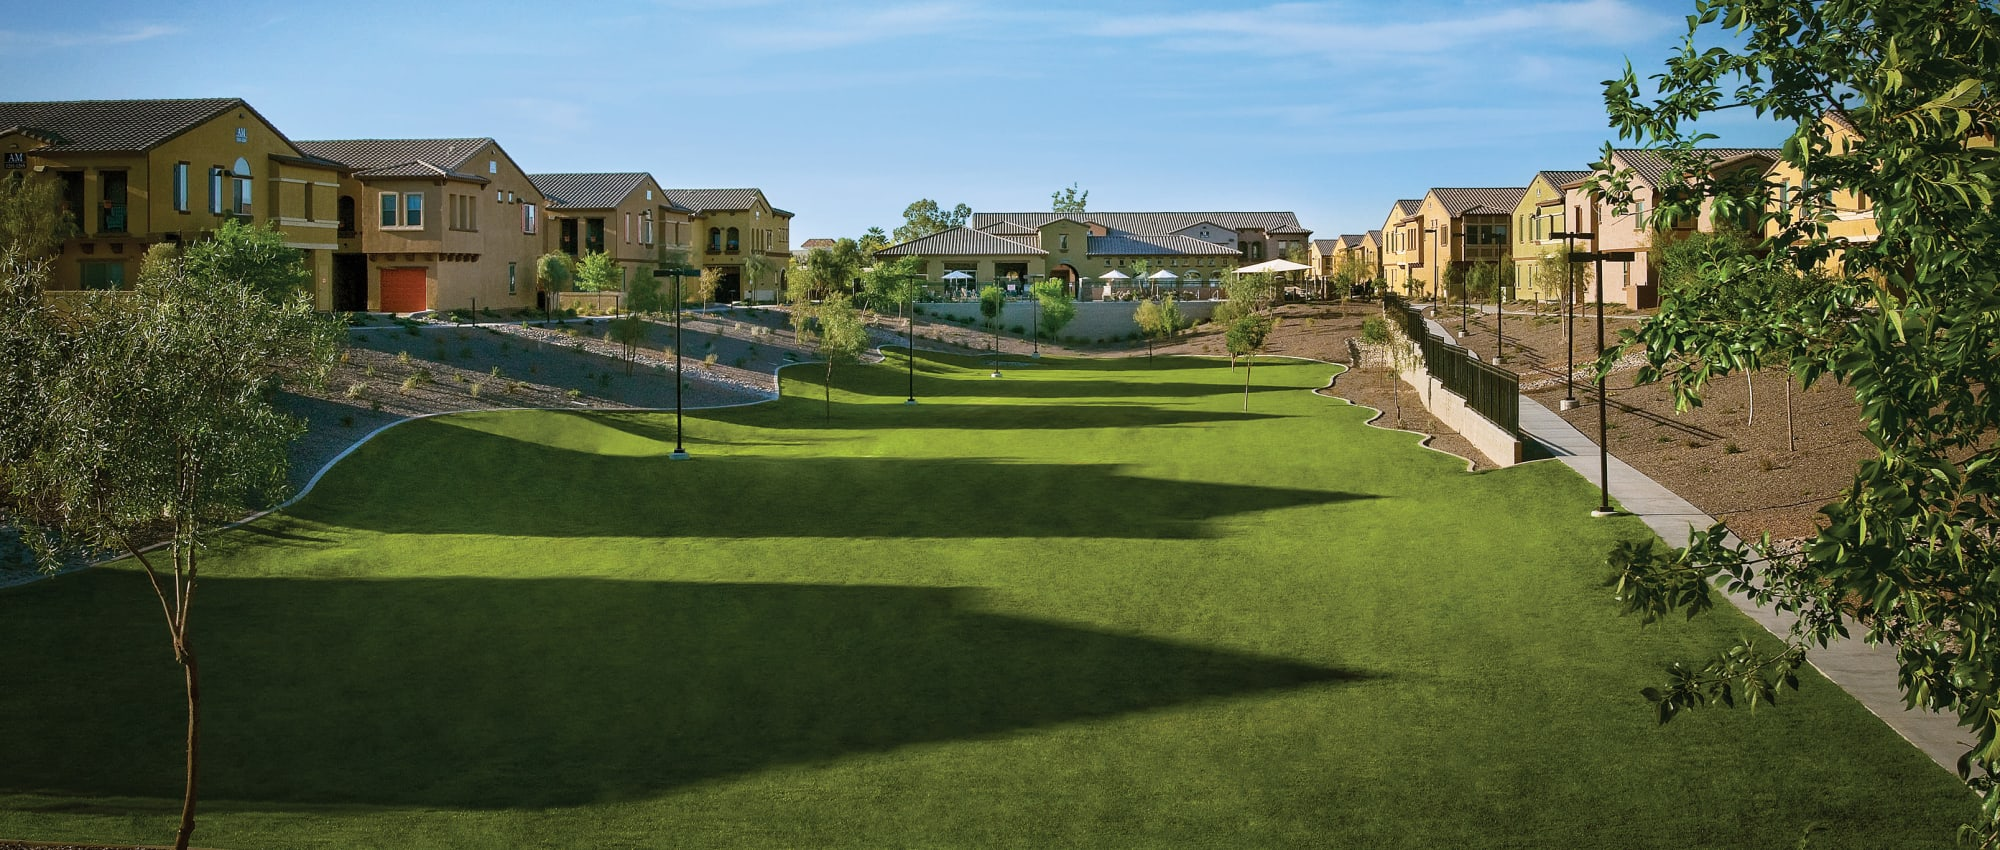 Spacious and beautifully maintained lawn at one of Mark-Taylor's Tempe Pet Friendly Communities in Tempe, Arizona